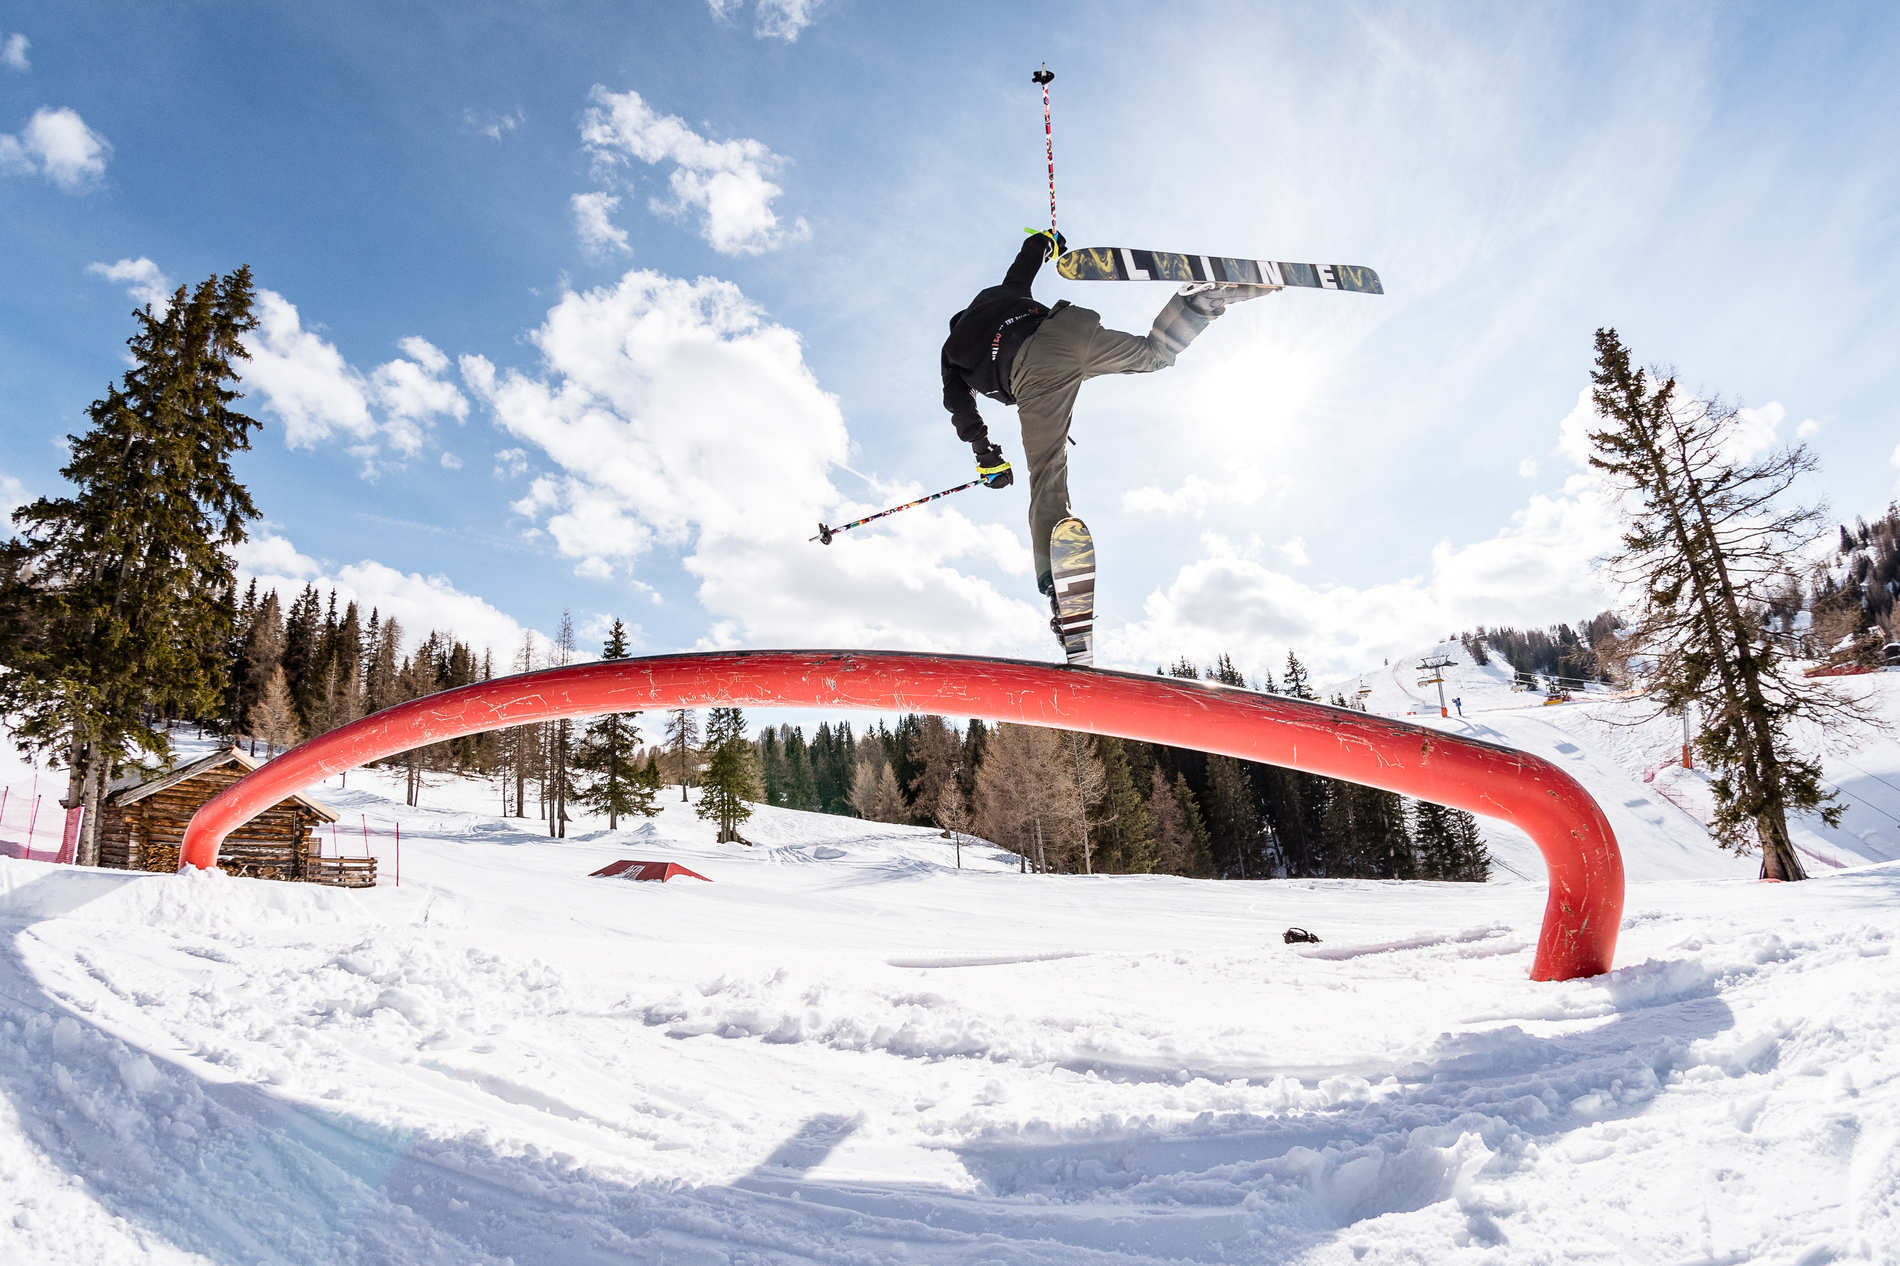 web alta badia 09 03 2019 action fs unknown rider christian riefenberg qparks 45